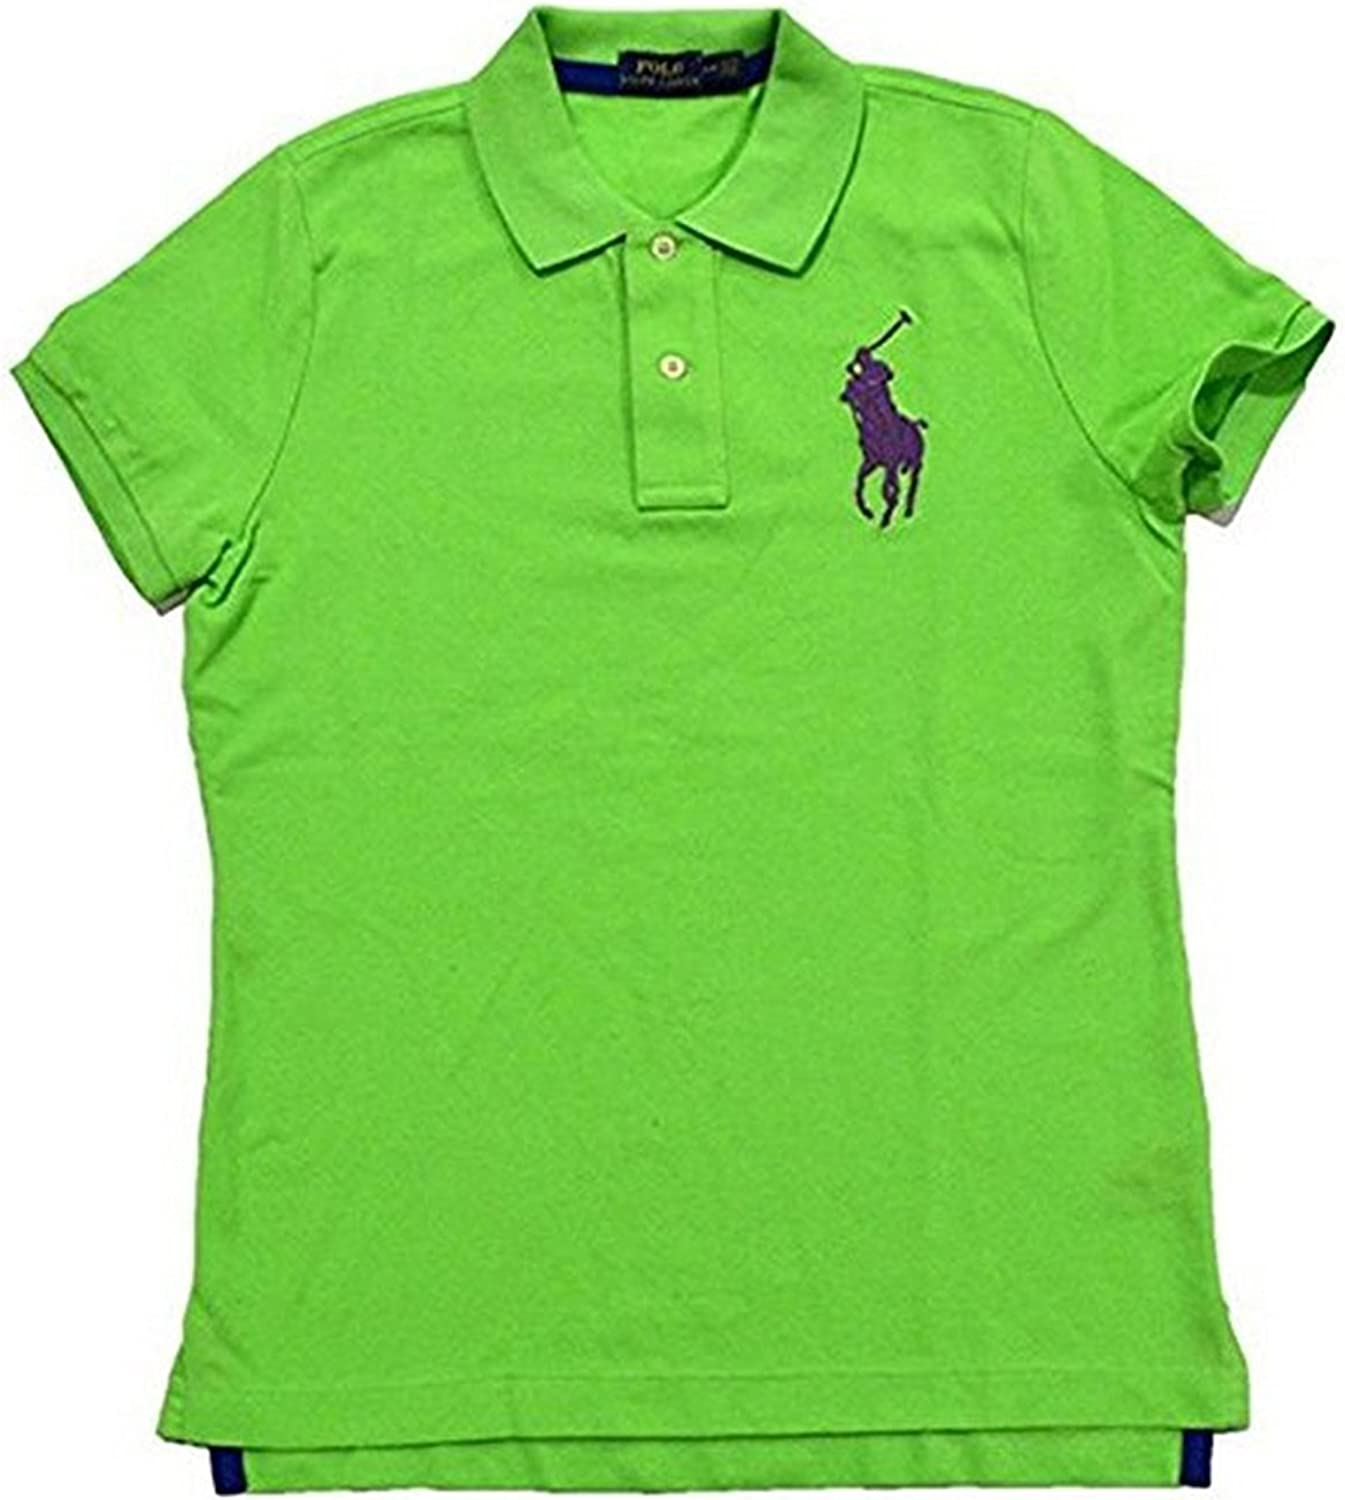 Ralph Lauren Clearance SALE! Limited time! Popular product Women's Big Pony Polo Shirt Mesh Tri-Color